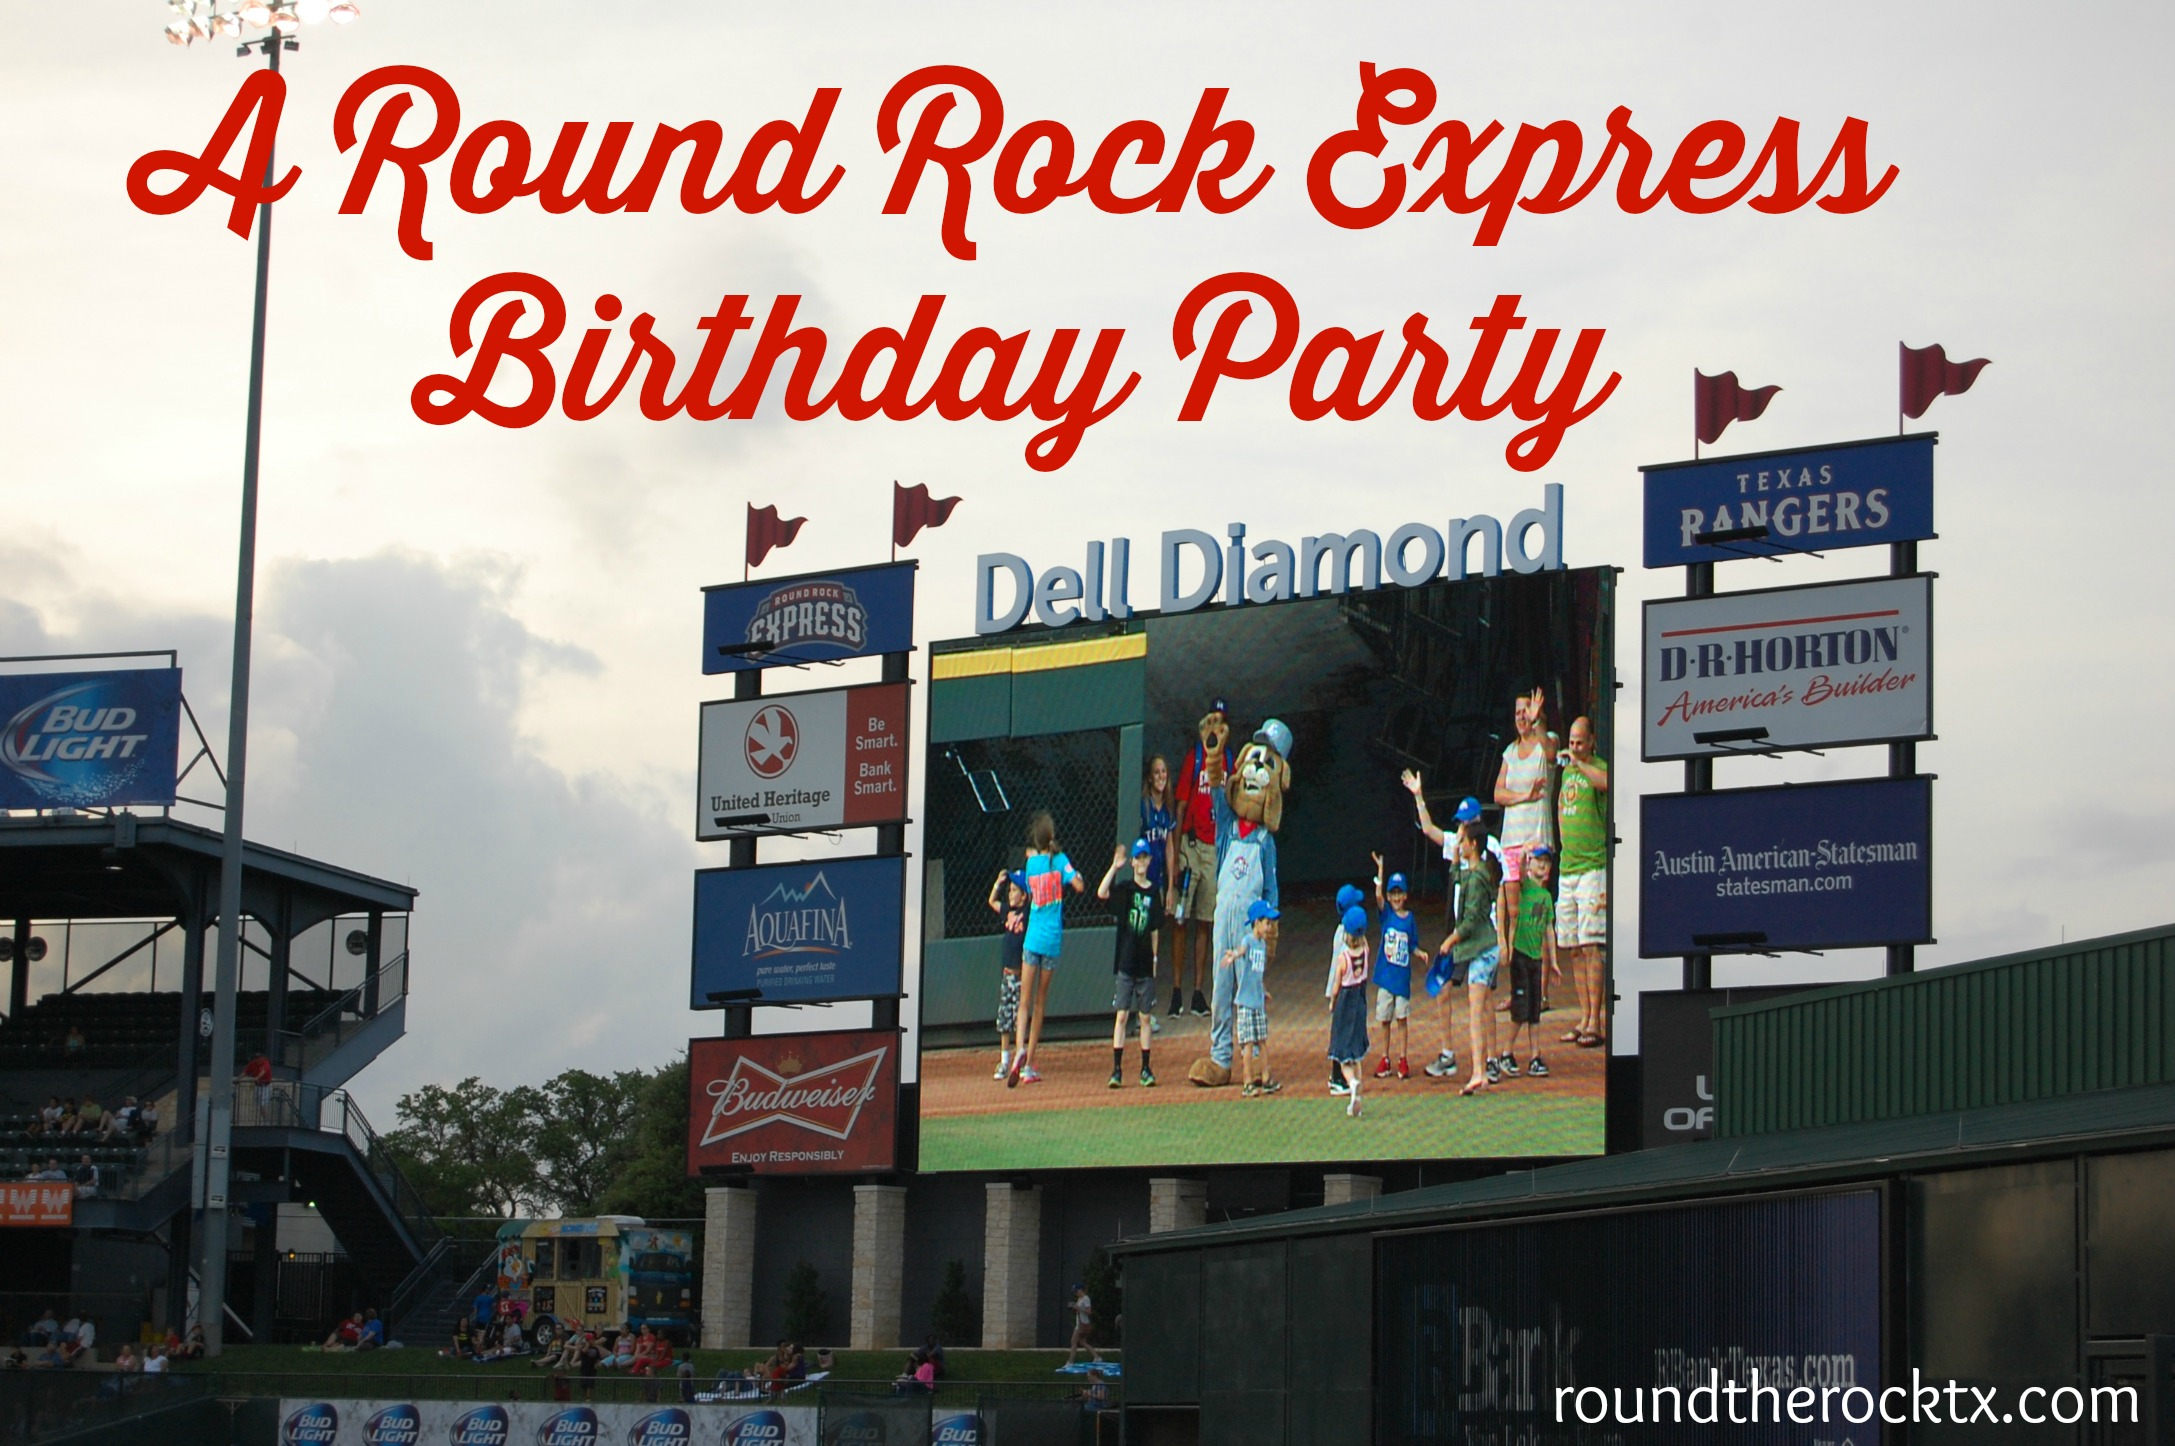 A Round Rock Express Birthday Party